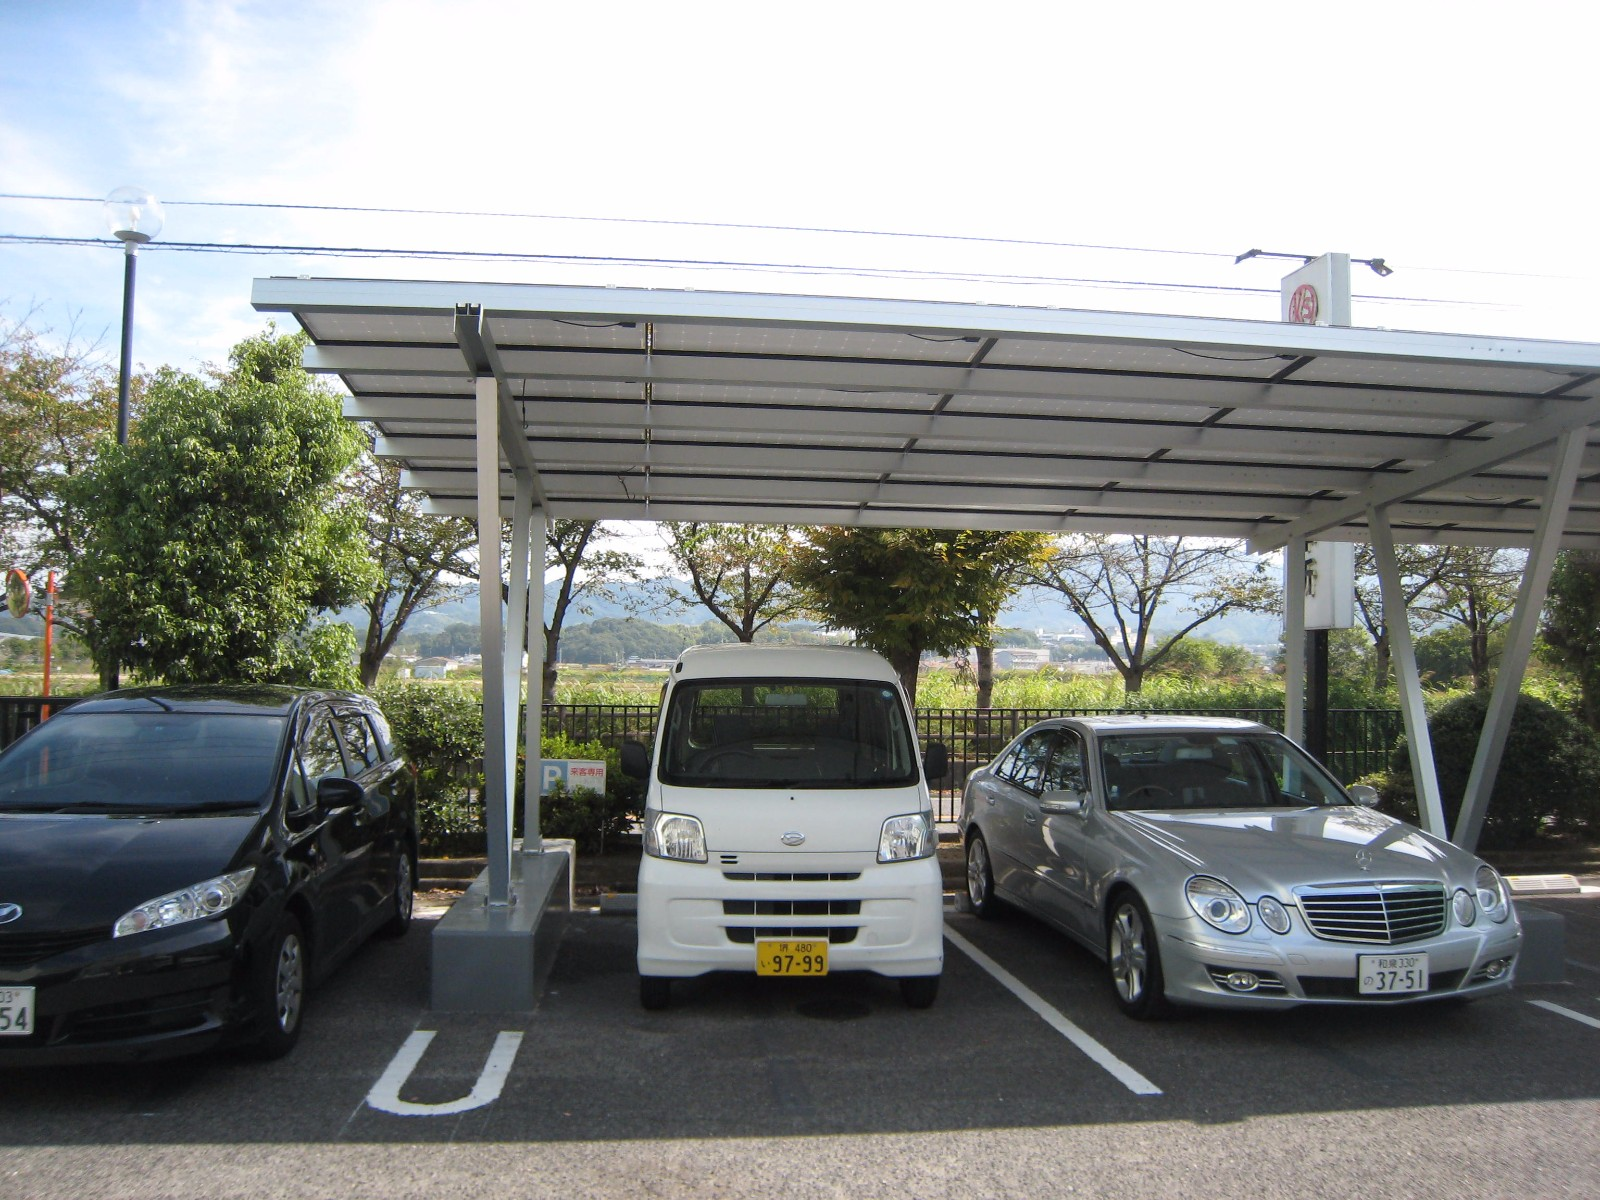 High quality Double Cars Carport Solar Racking System Quotes,China Double Cars Carport Solar Racking System Factory,Double Cars Carport Solar Racking System Purchasing